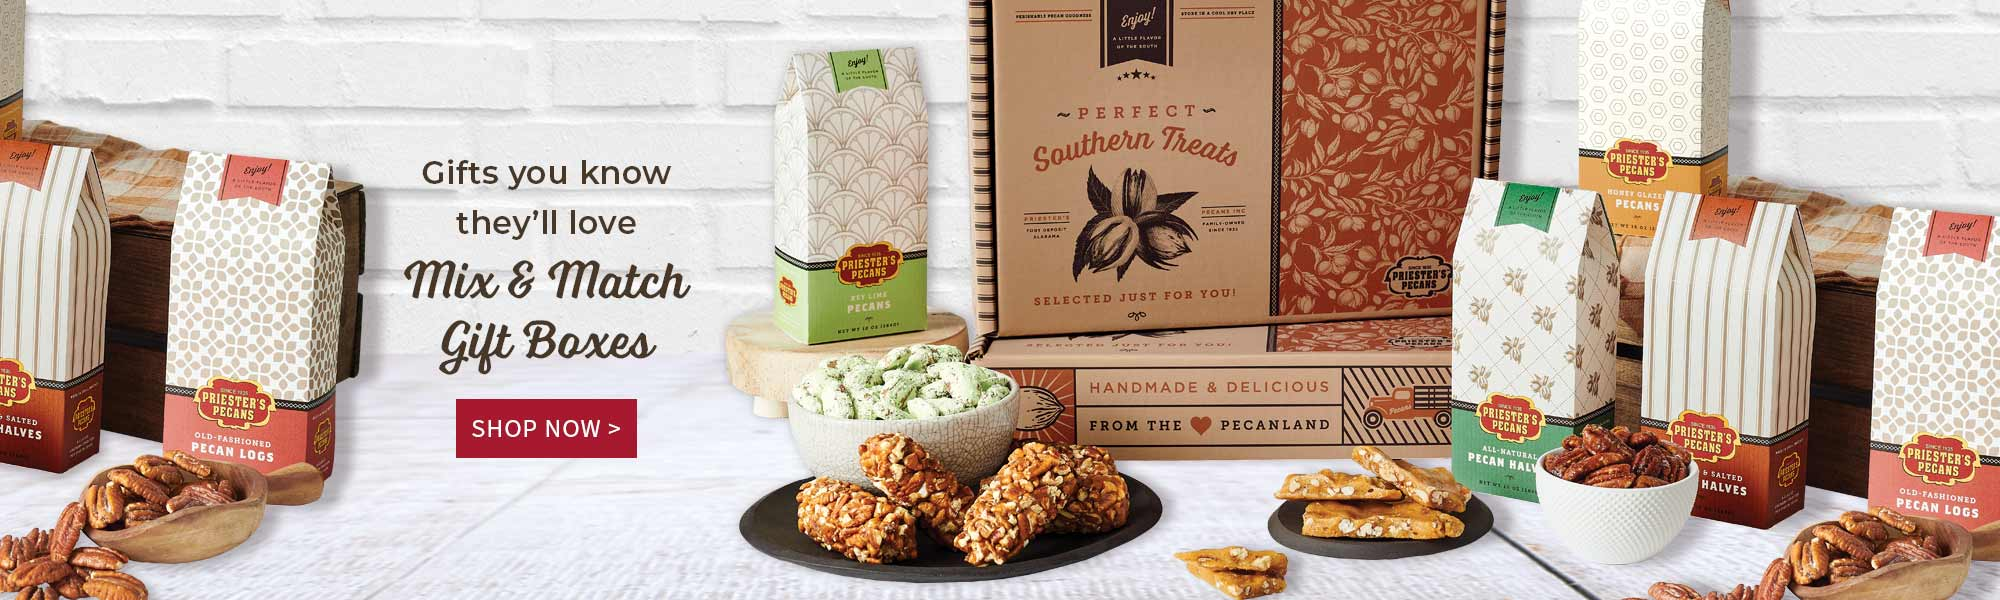 Gifts you know they'll love - Mix & Match Gift Boxes